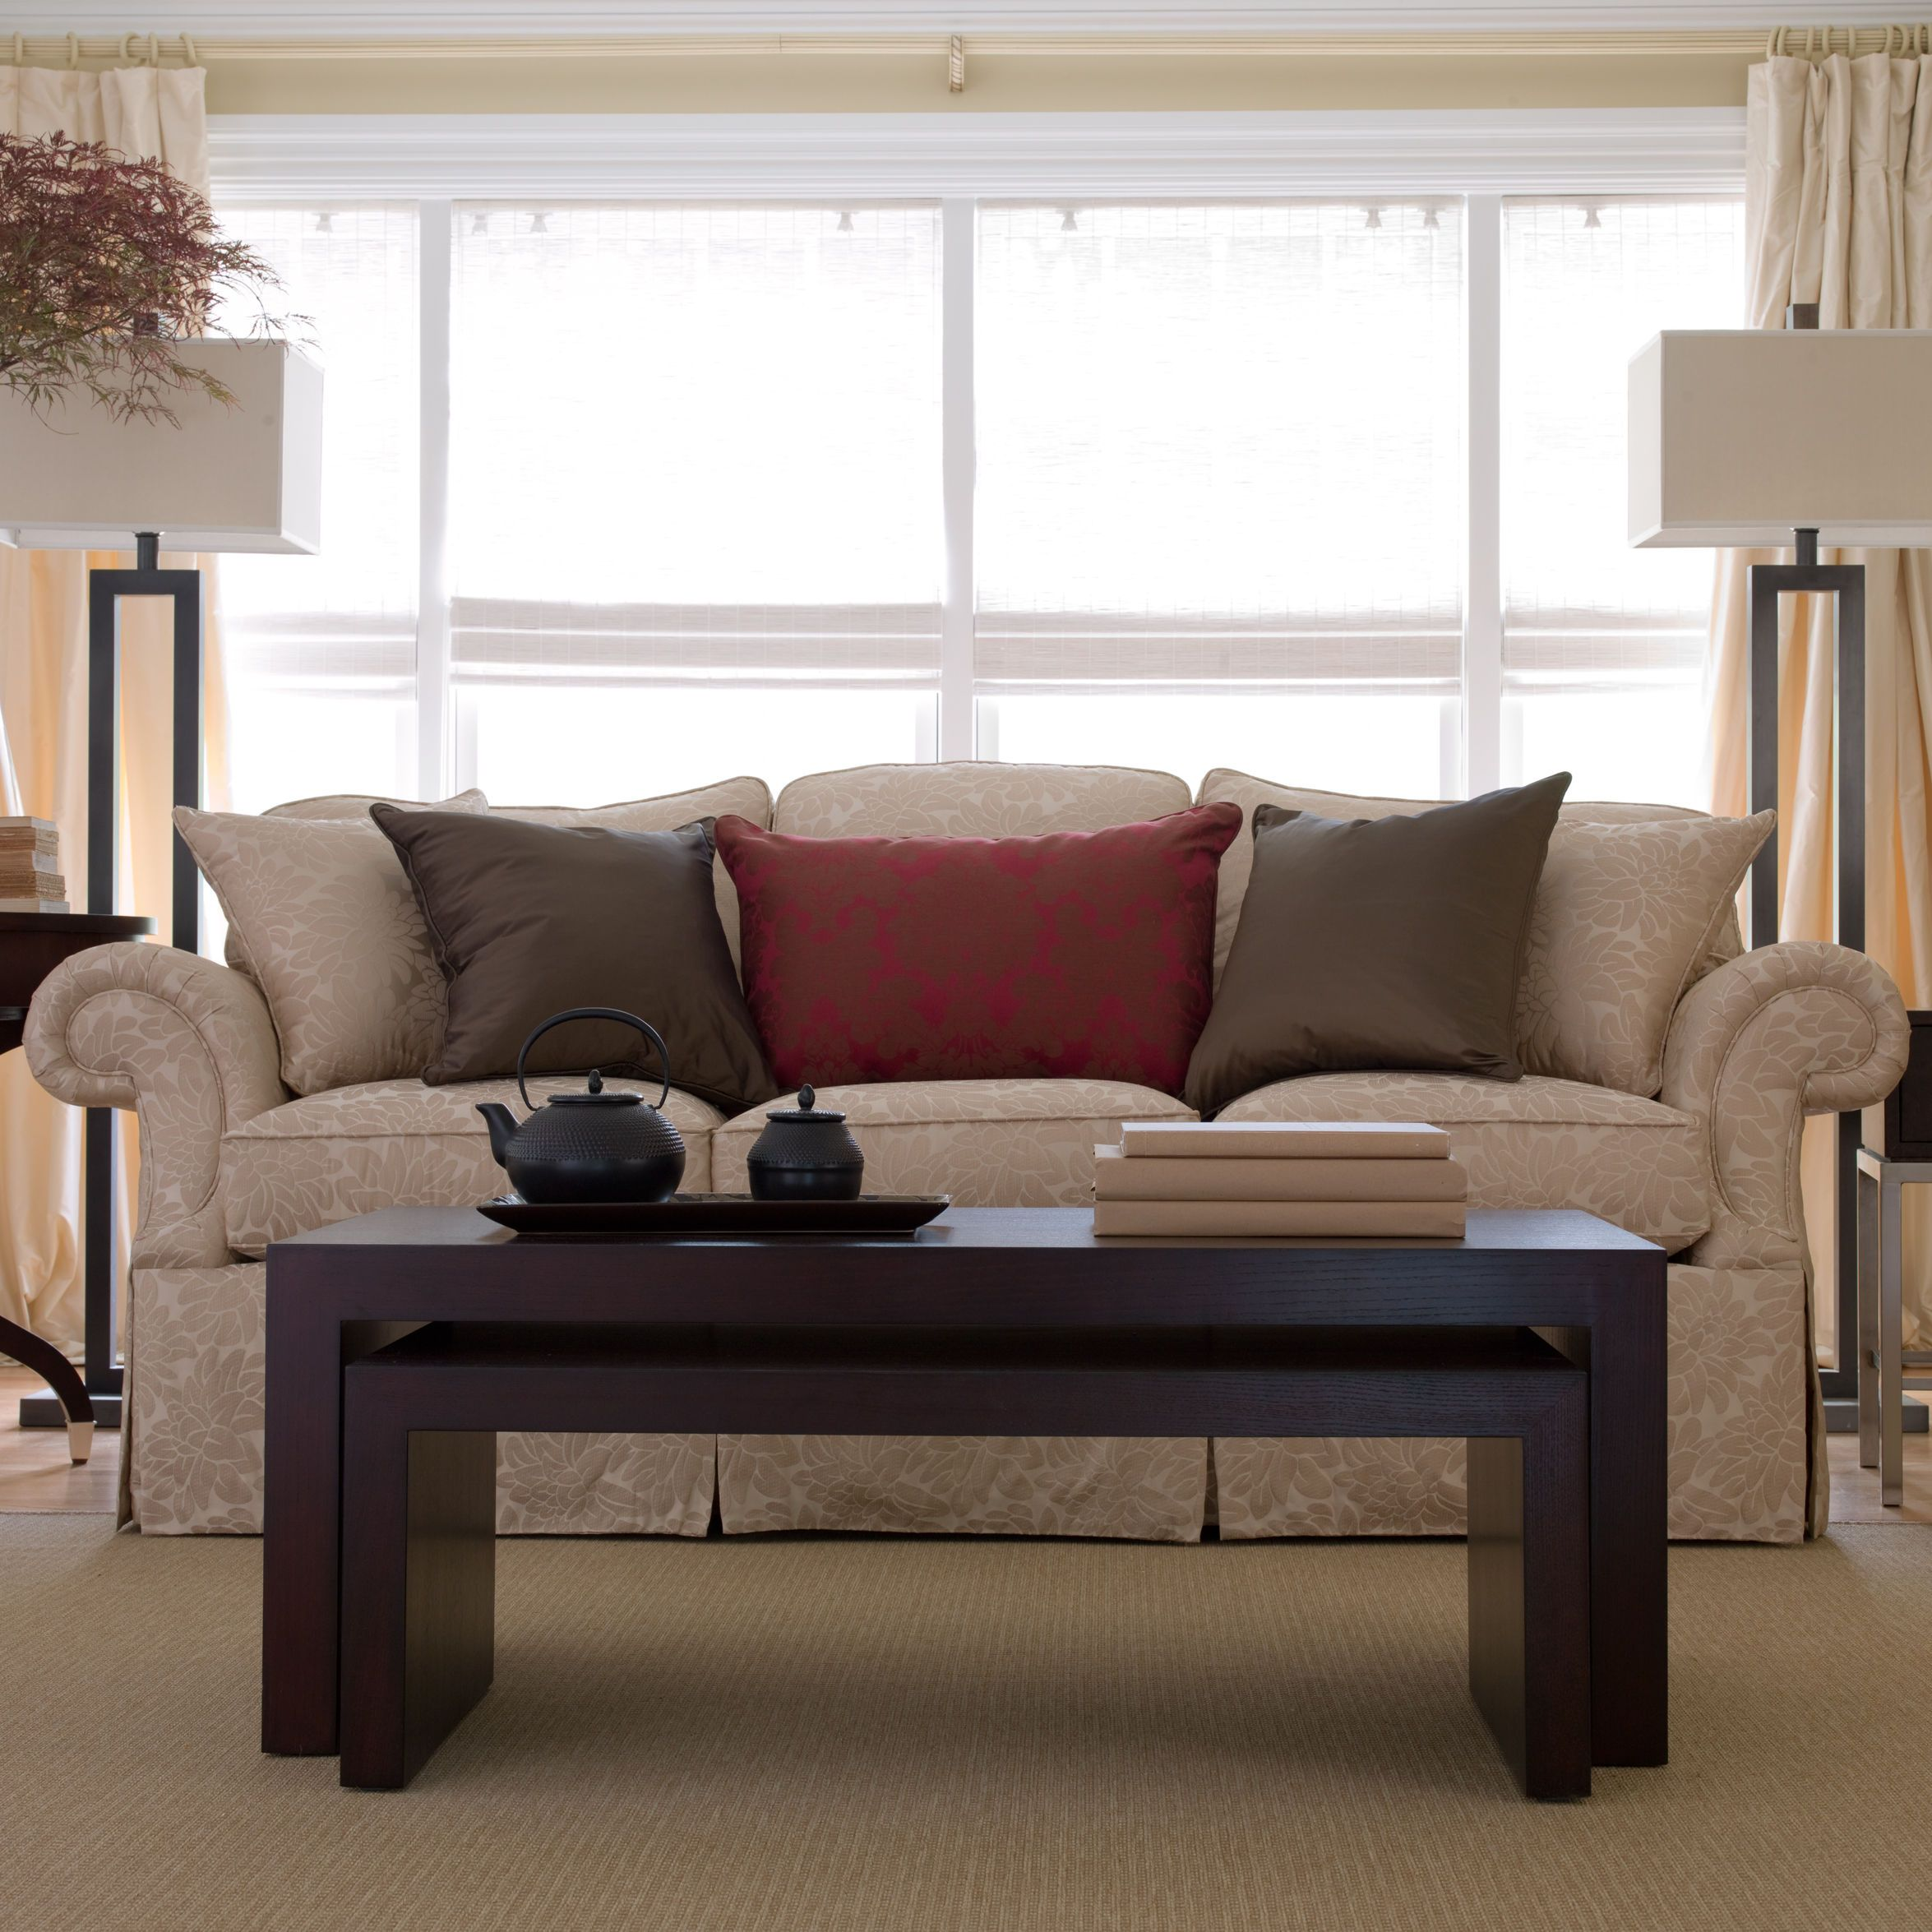 Ethan Allen Tufted Coffee Table: Neutral Living Rooms. Duo Coffee Tables